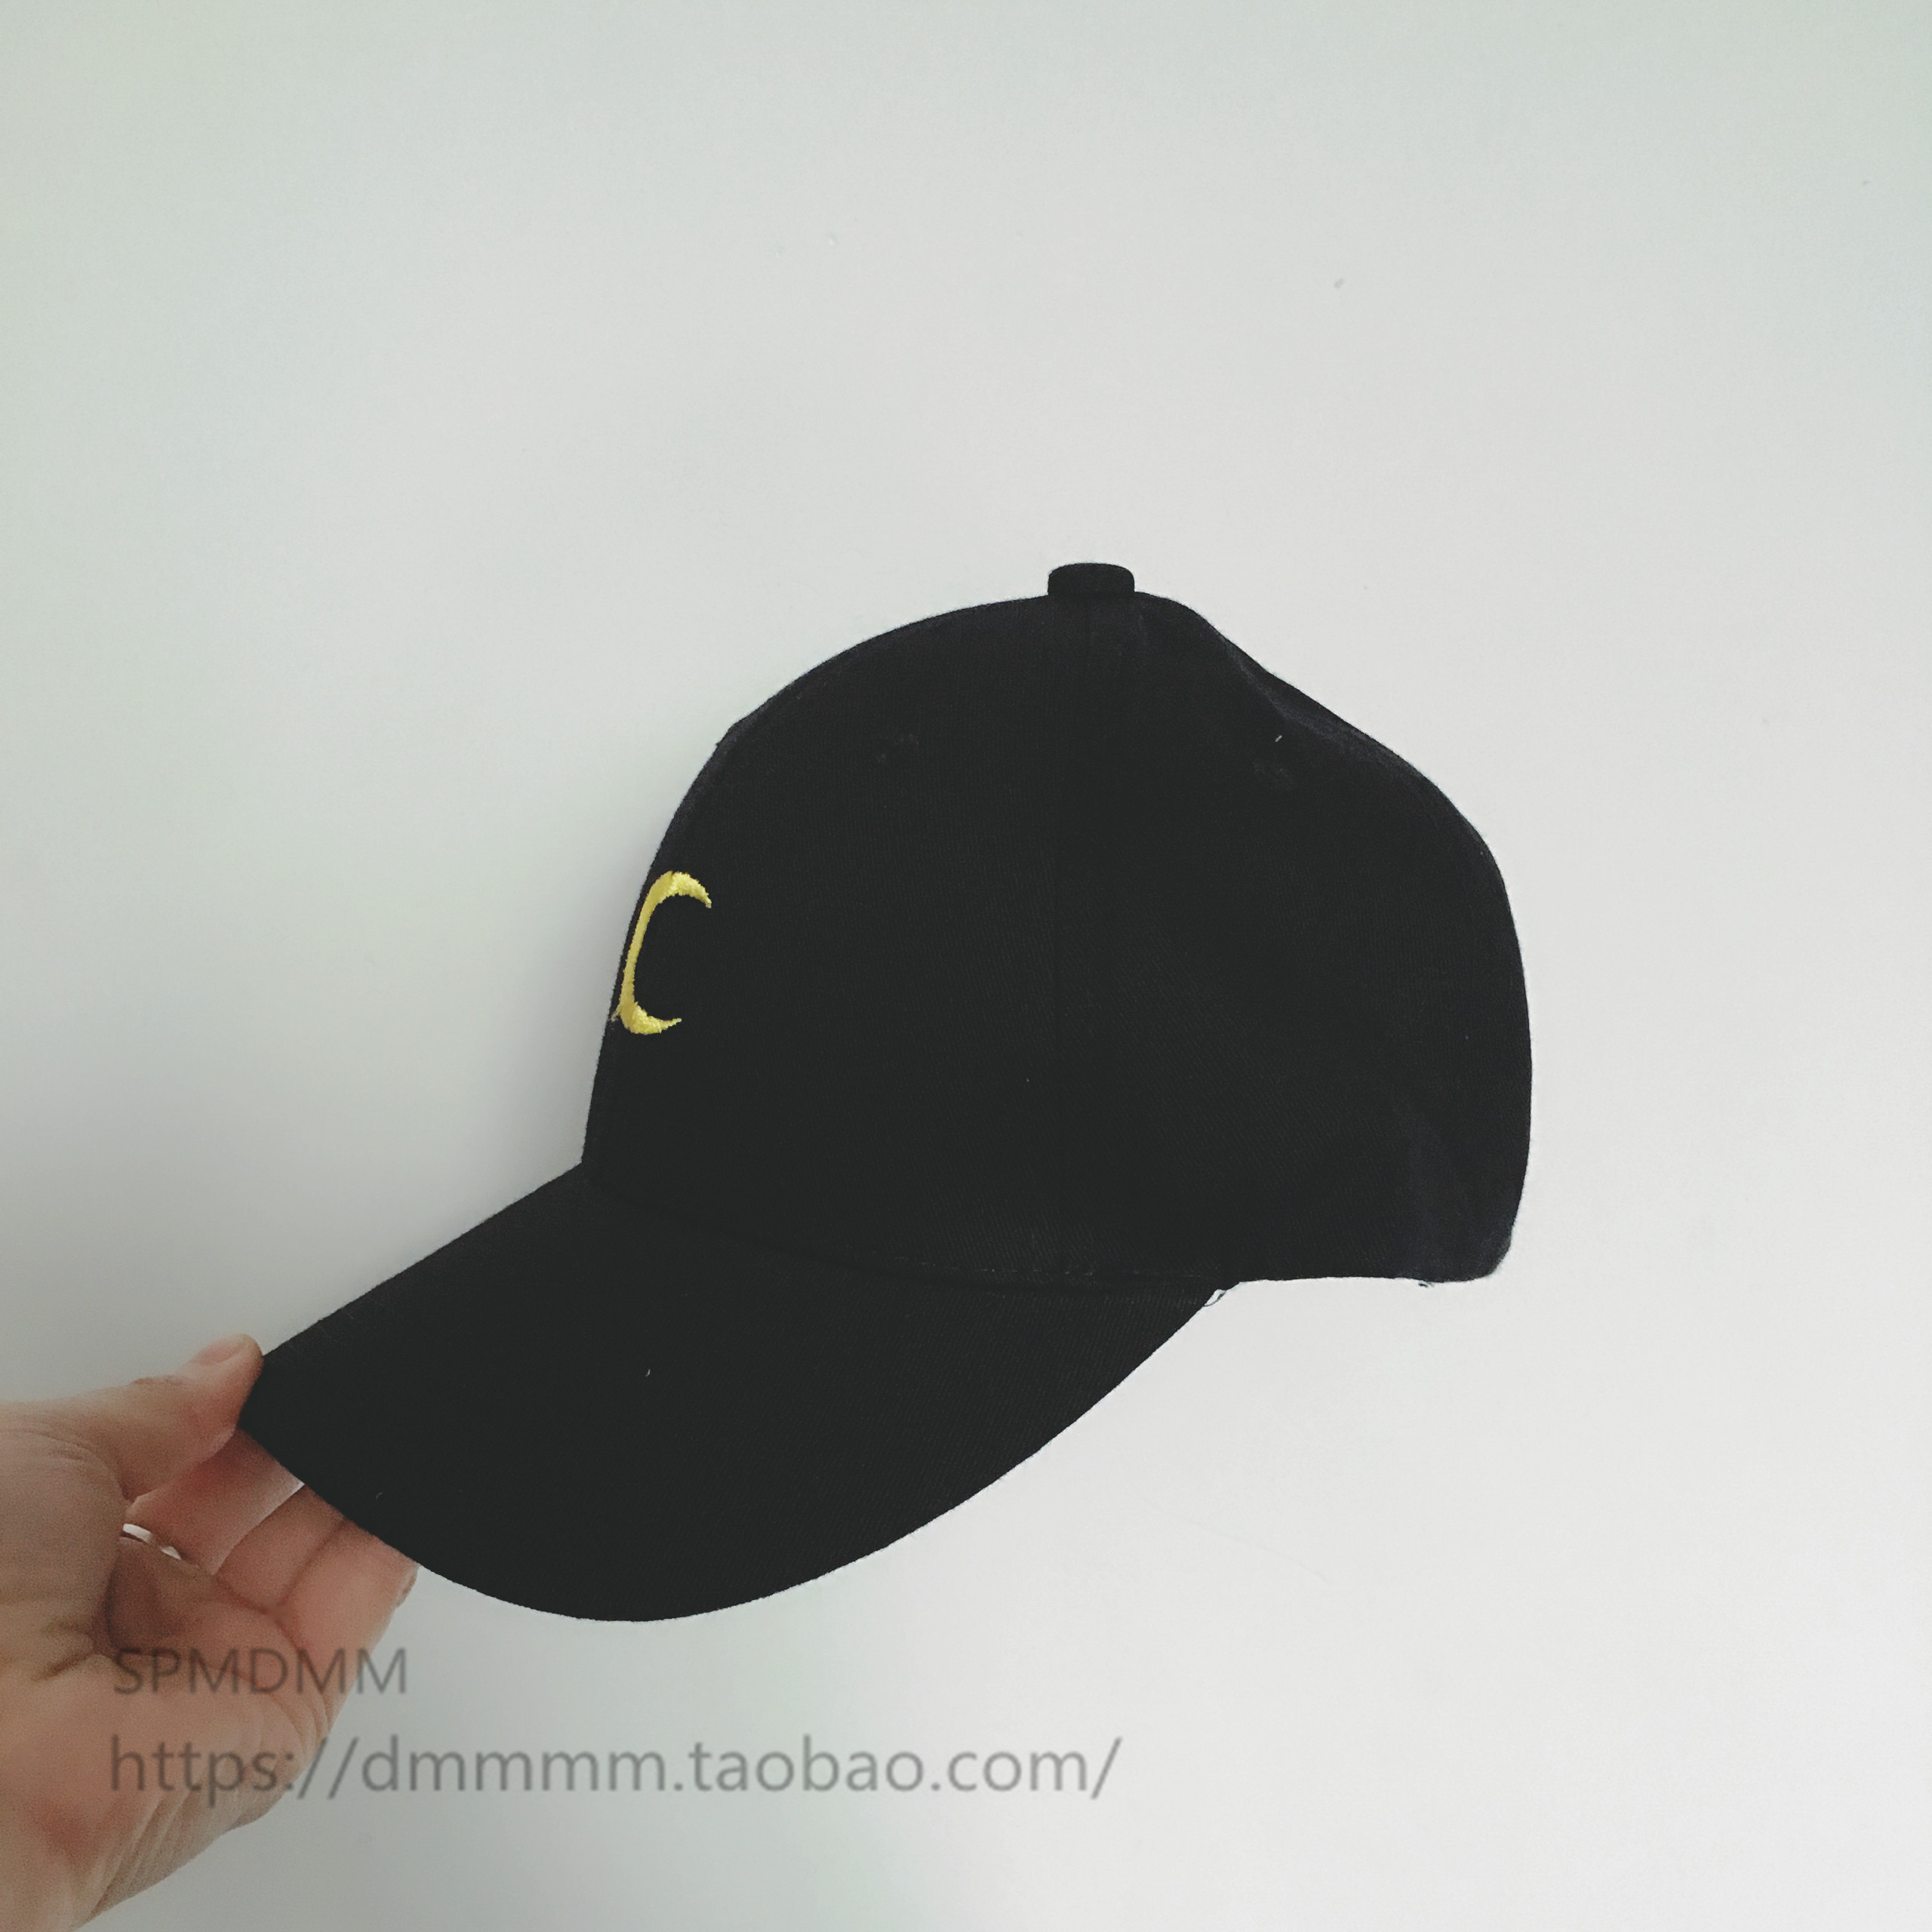 South Korea embroidery moon movement eaves white baseball cap Casquette black leisure cap Sports Hats men women lovers tide 2016 new new embroidered hold onto your friends casquette polos baseball cap strapback black white pink for men women cap